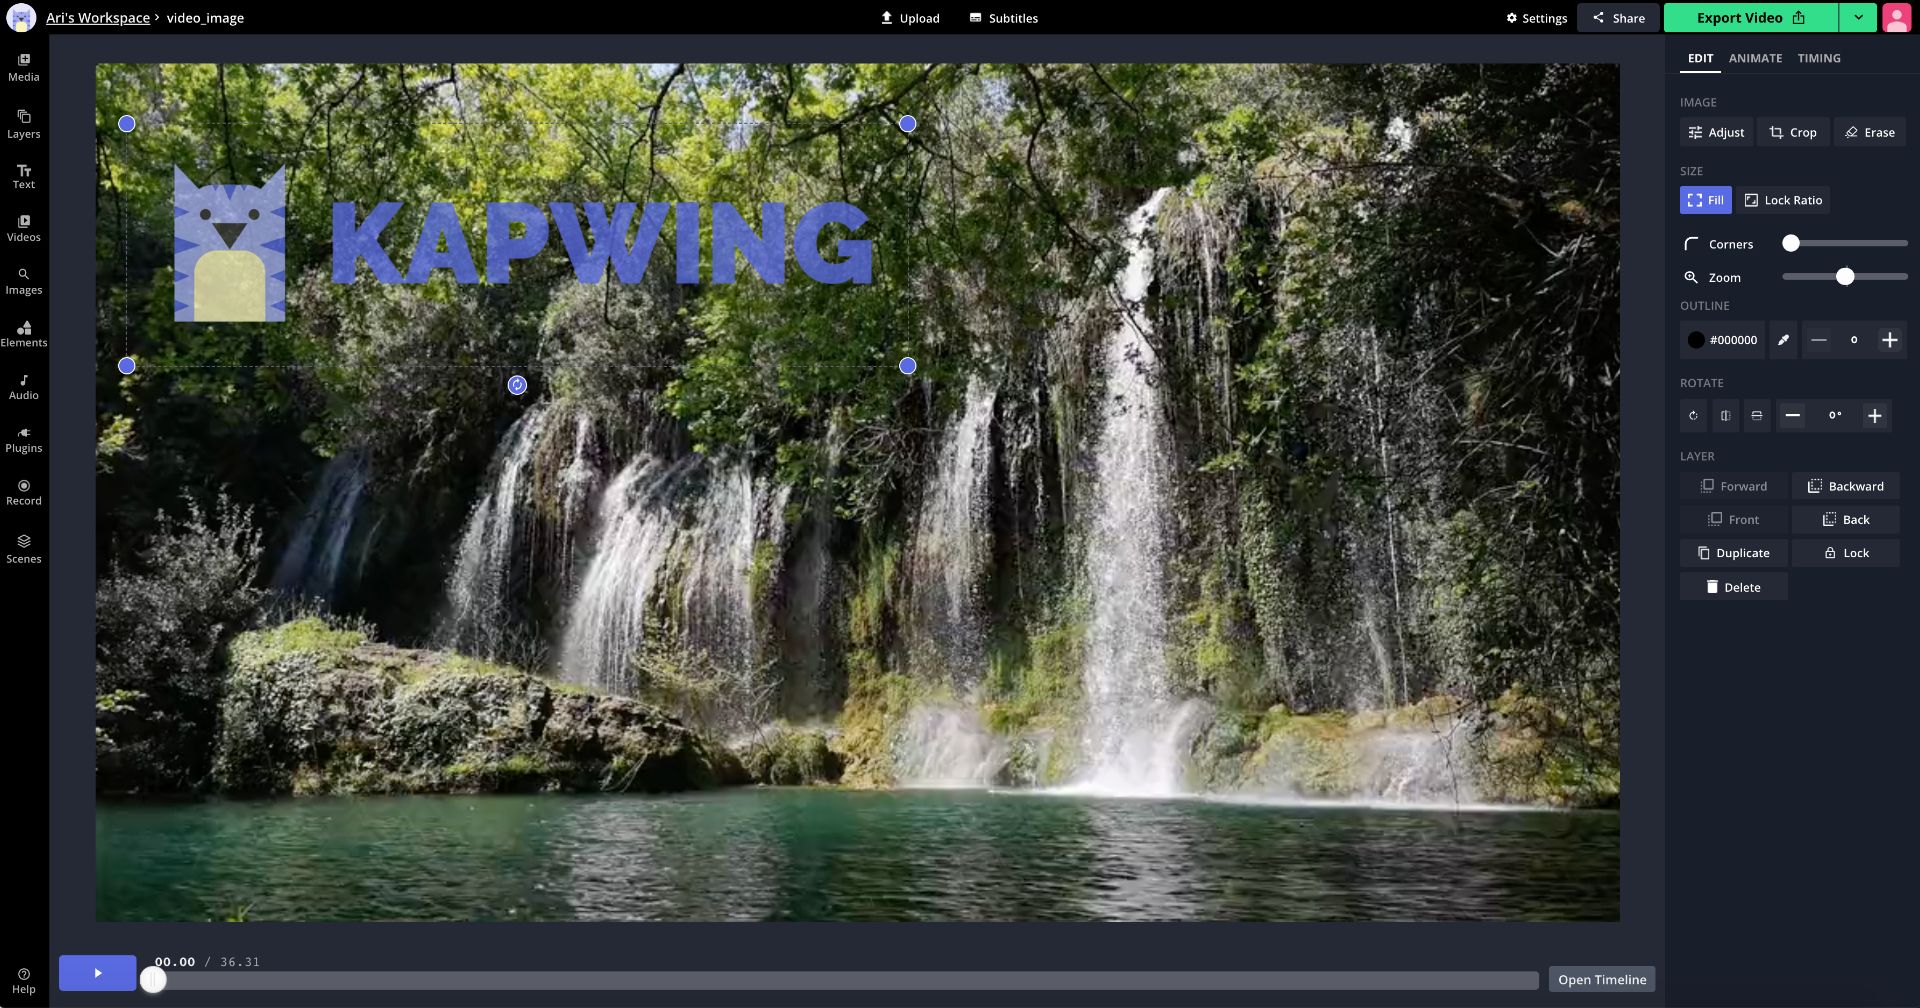 A screen recording showing how to resize and rearrange photos in Kapwing.